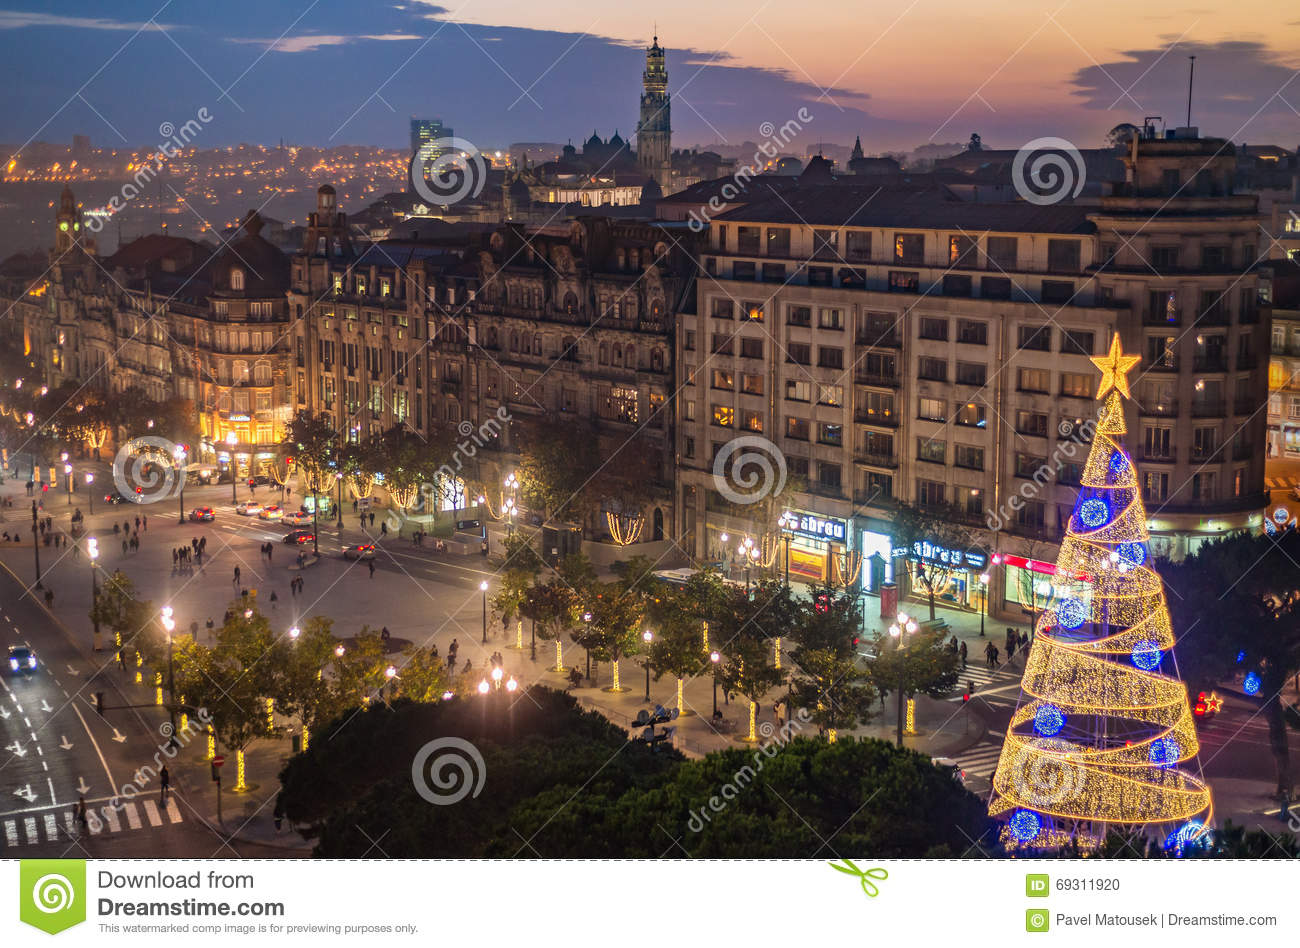 Aerial view of Aliados / Liberdade Square and Clerigos Tower town of Porto. Sunset view with winter Christmas tree, Lisbon